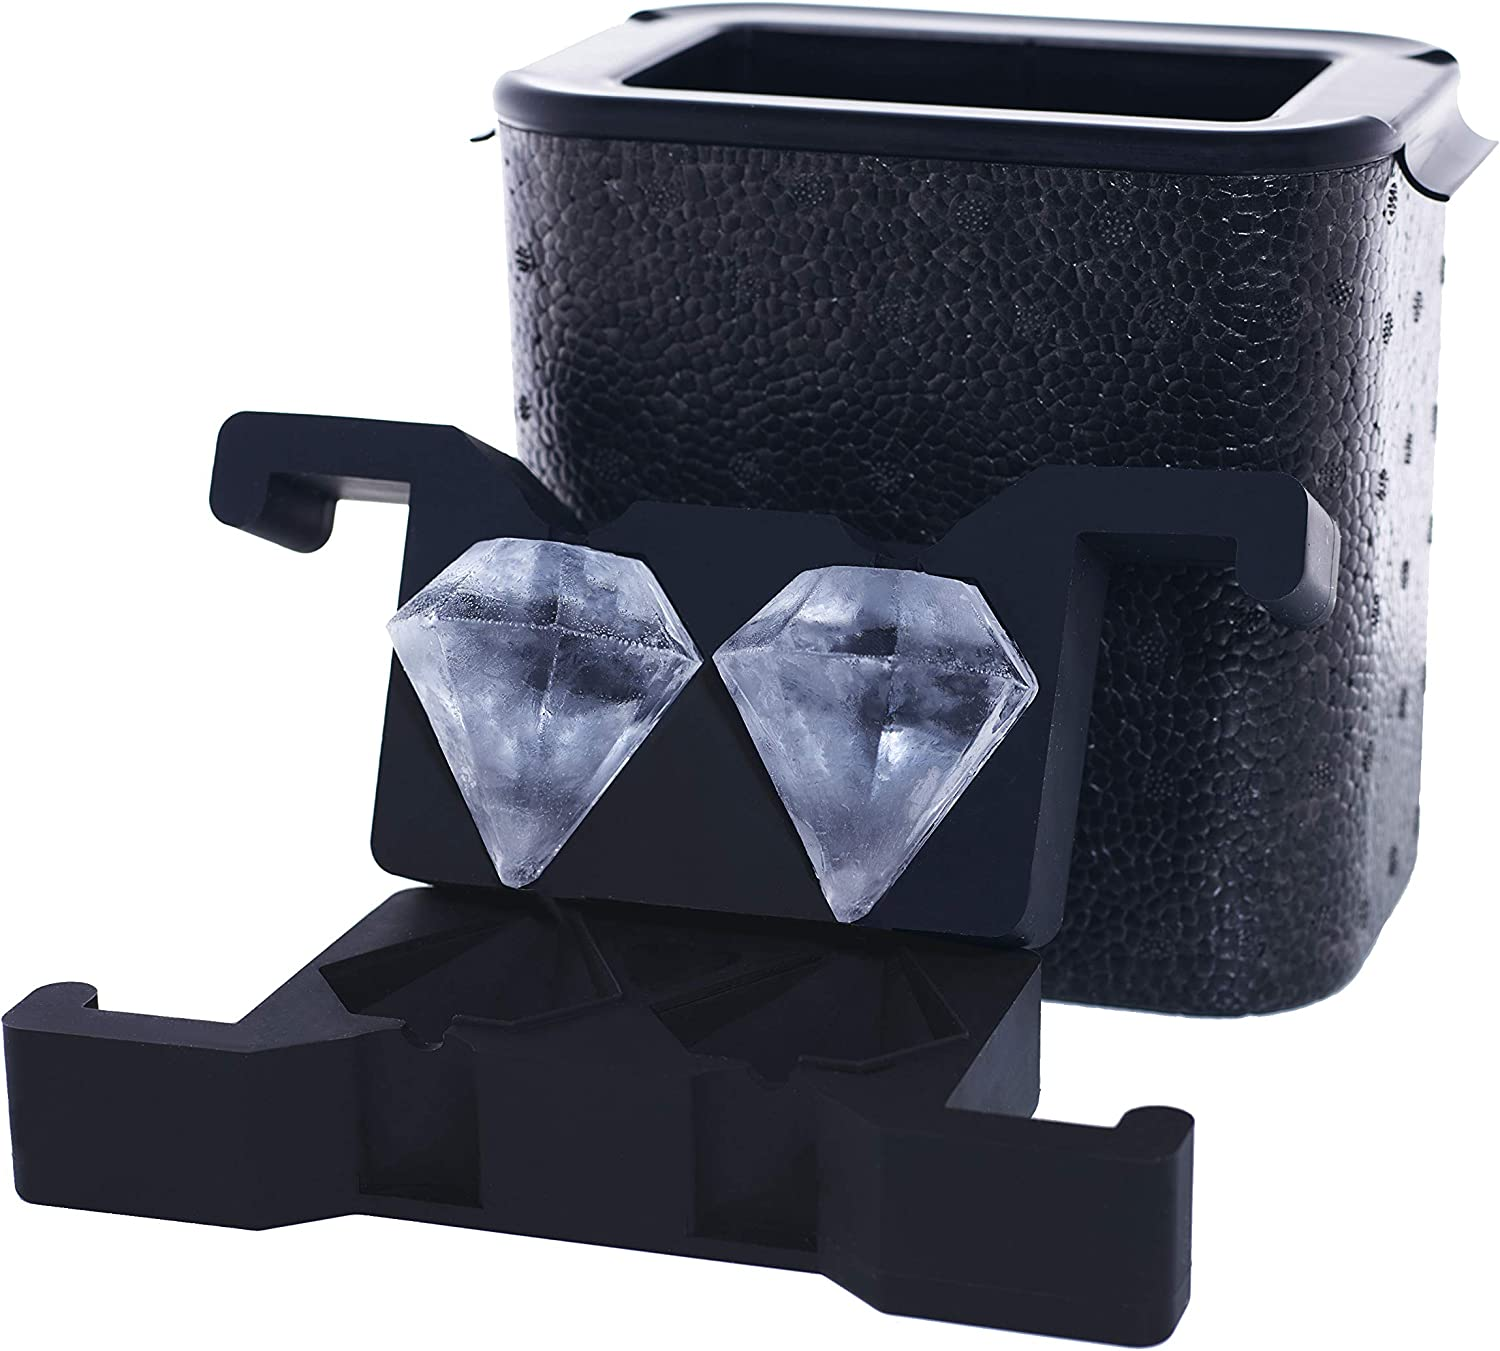 Crystal-Clear Diamond-Shaped Ice Maker, 2-Cavity Mold, 3-Dimensional, 2.25 Inch Large Diamond Cut Ice, by Better Kitchen Products